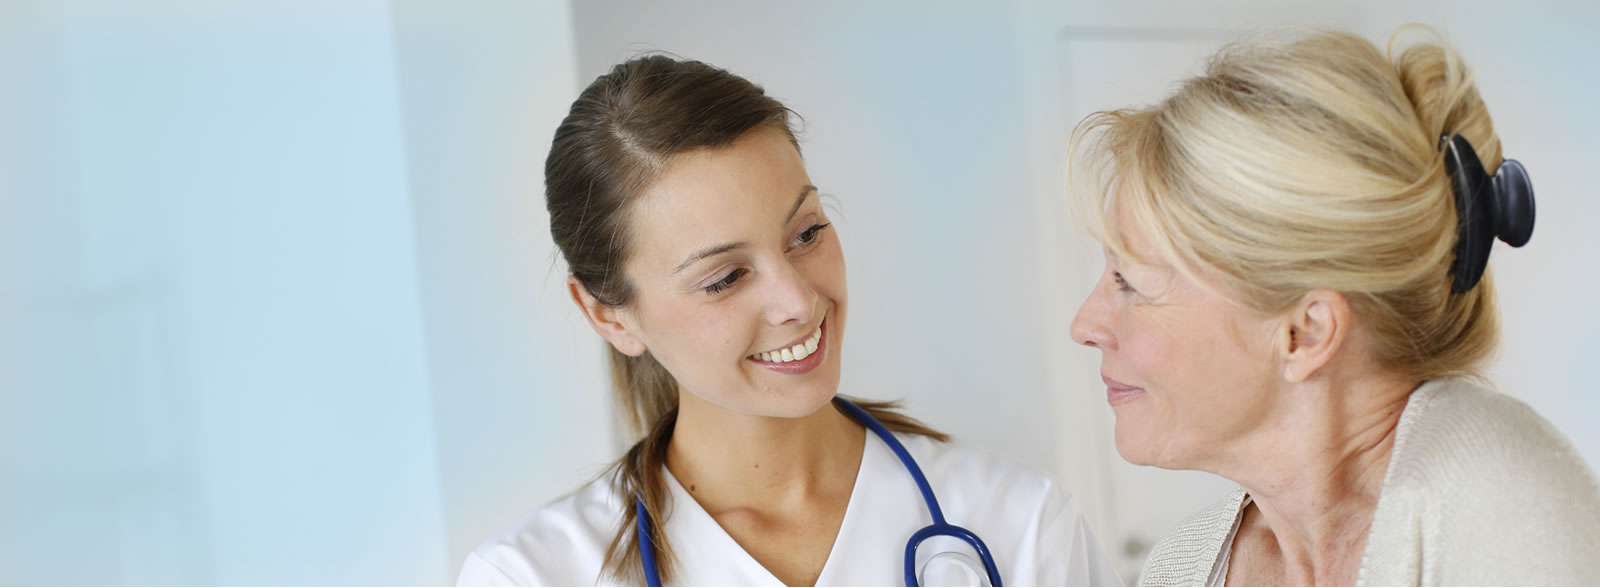 Nurse talking with patient